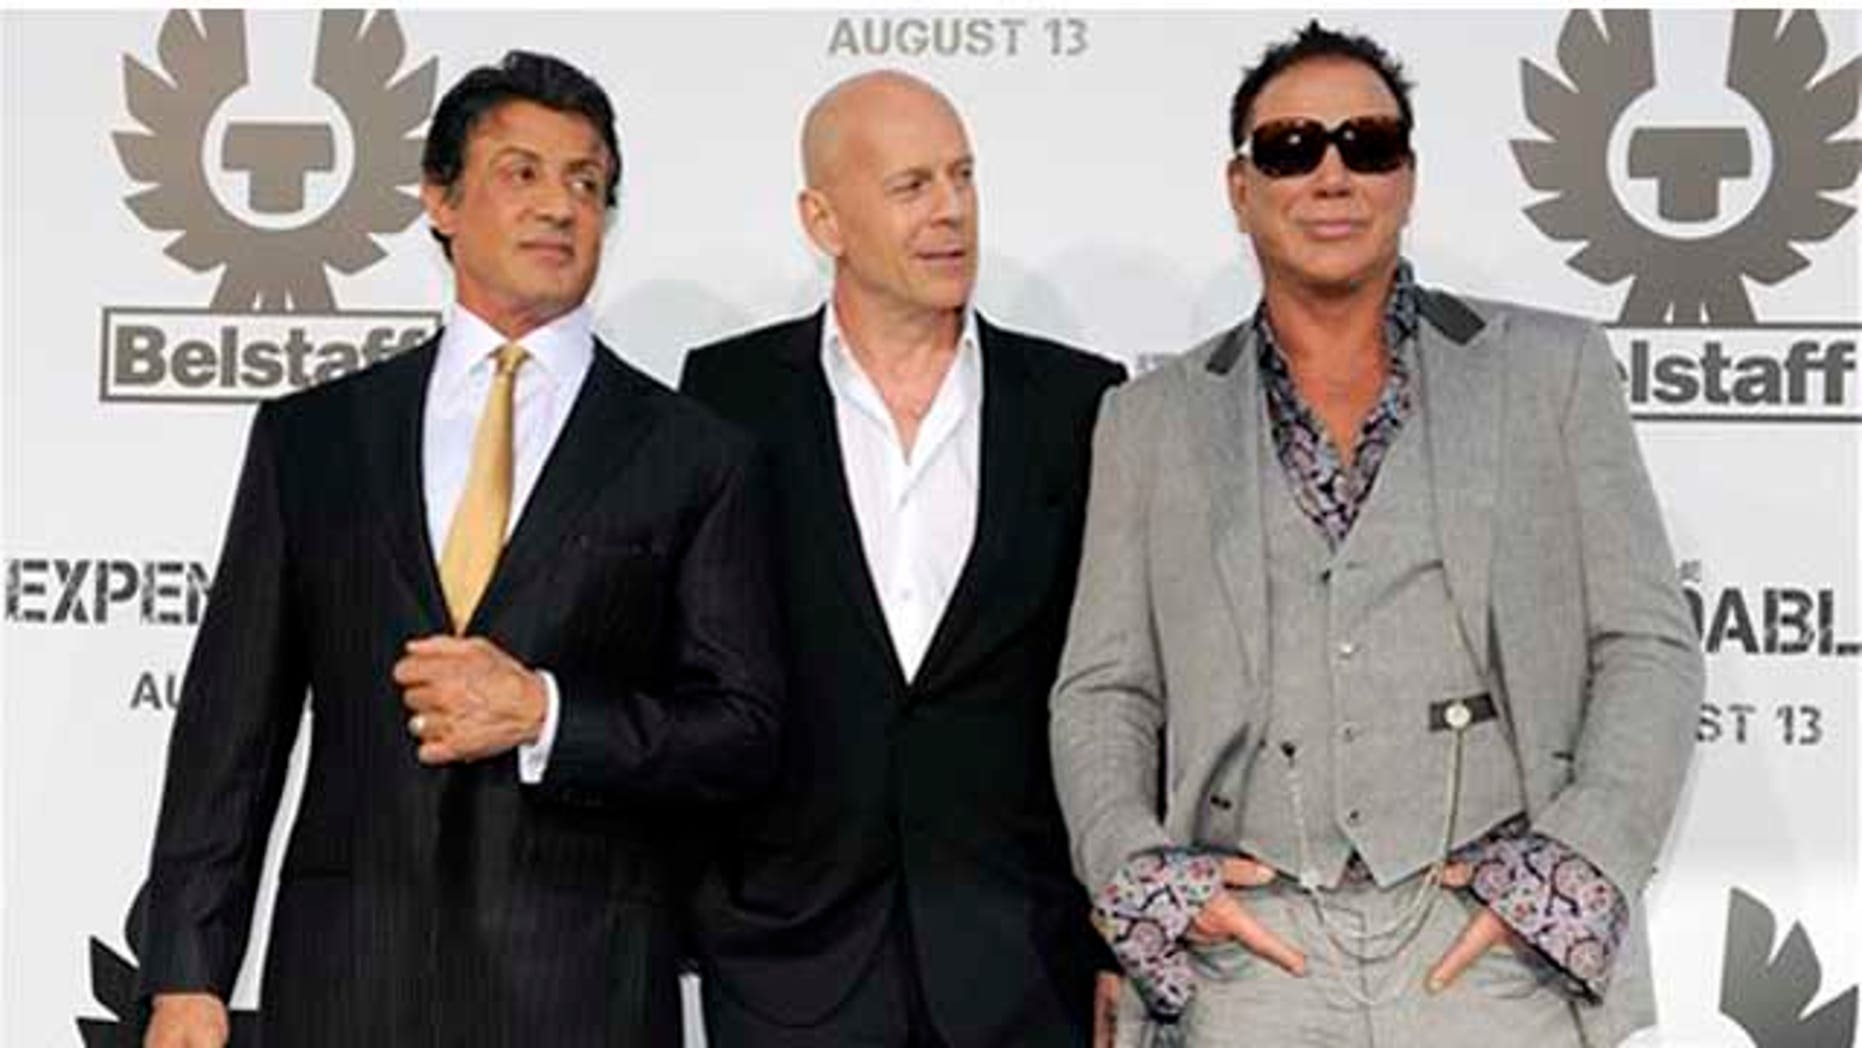 """Aug. 3: Sylvester Stallone, Bruce Willis and Mickey Rourke pose together at the premiere of """"The Expendables"""" in Los Angeles."""